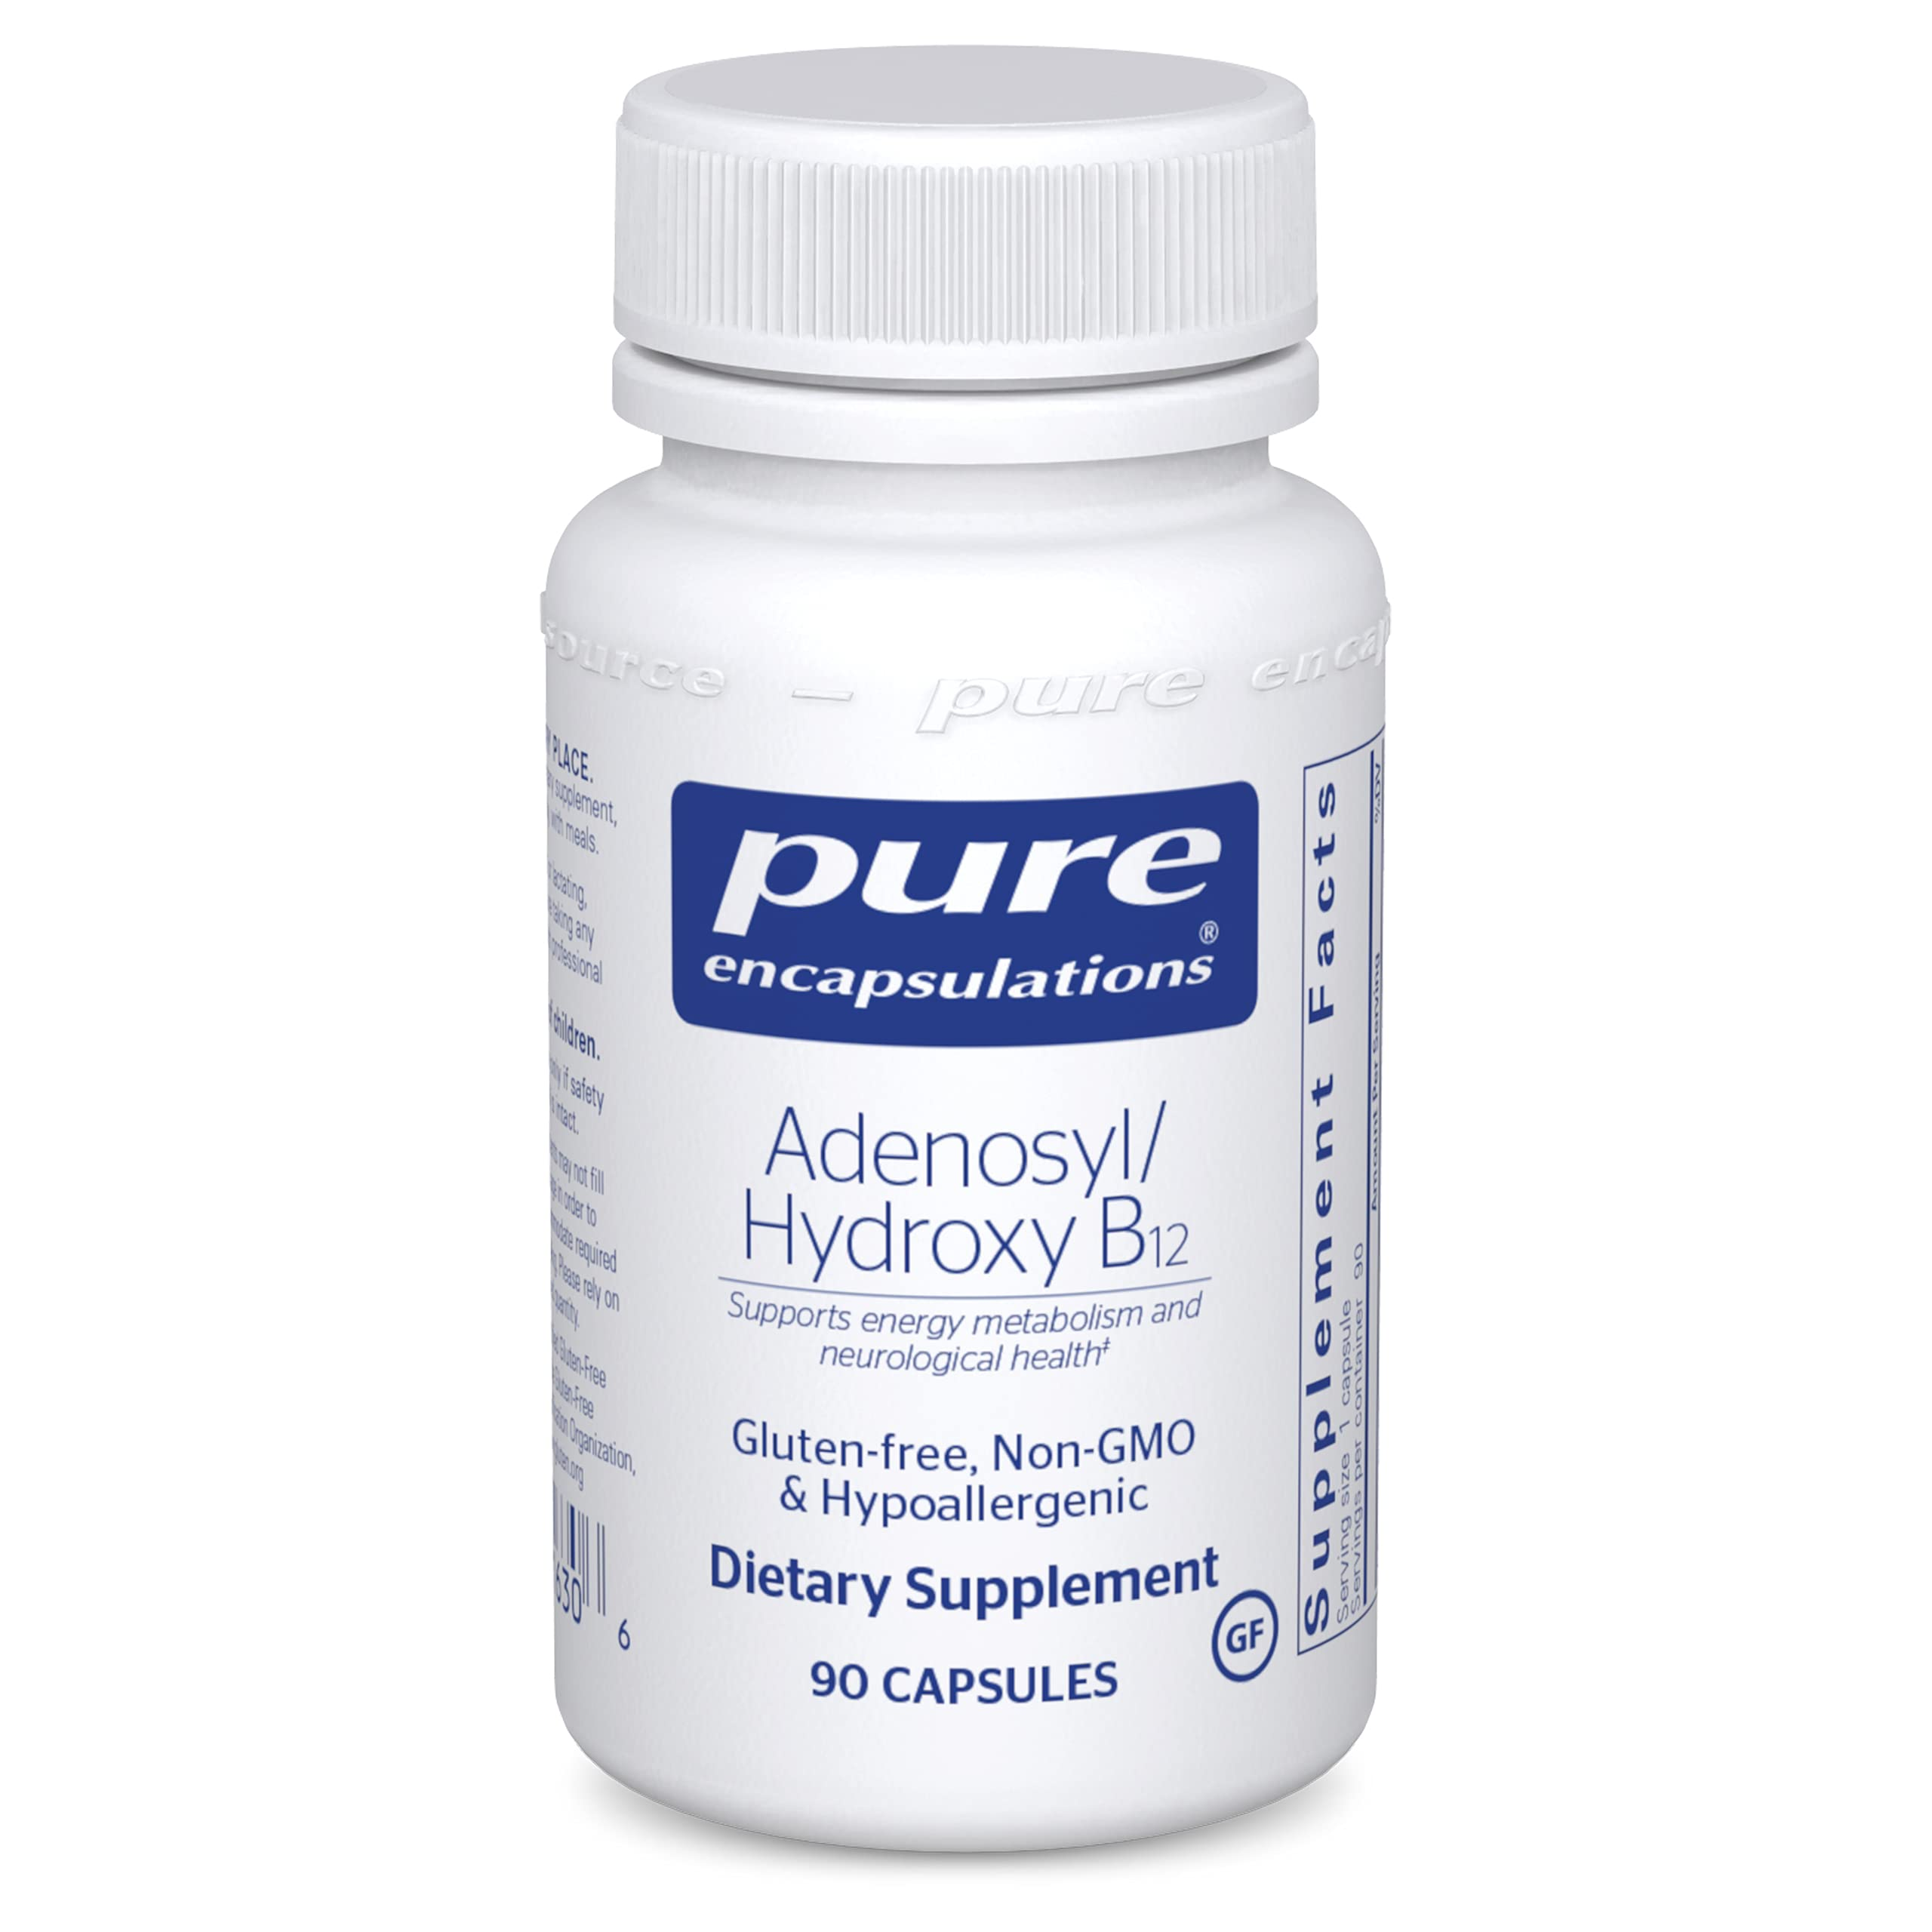 Pure Encapsulations Adenosyl/Hydroxy B12   Blend with Vitamin B12 for Nerve and Mitochondrial Support*   90 Capsules